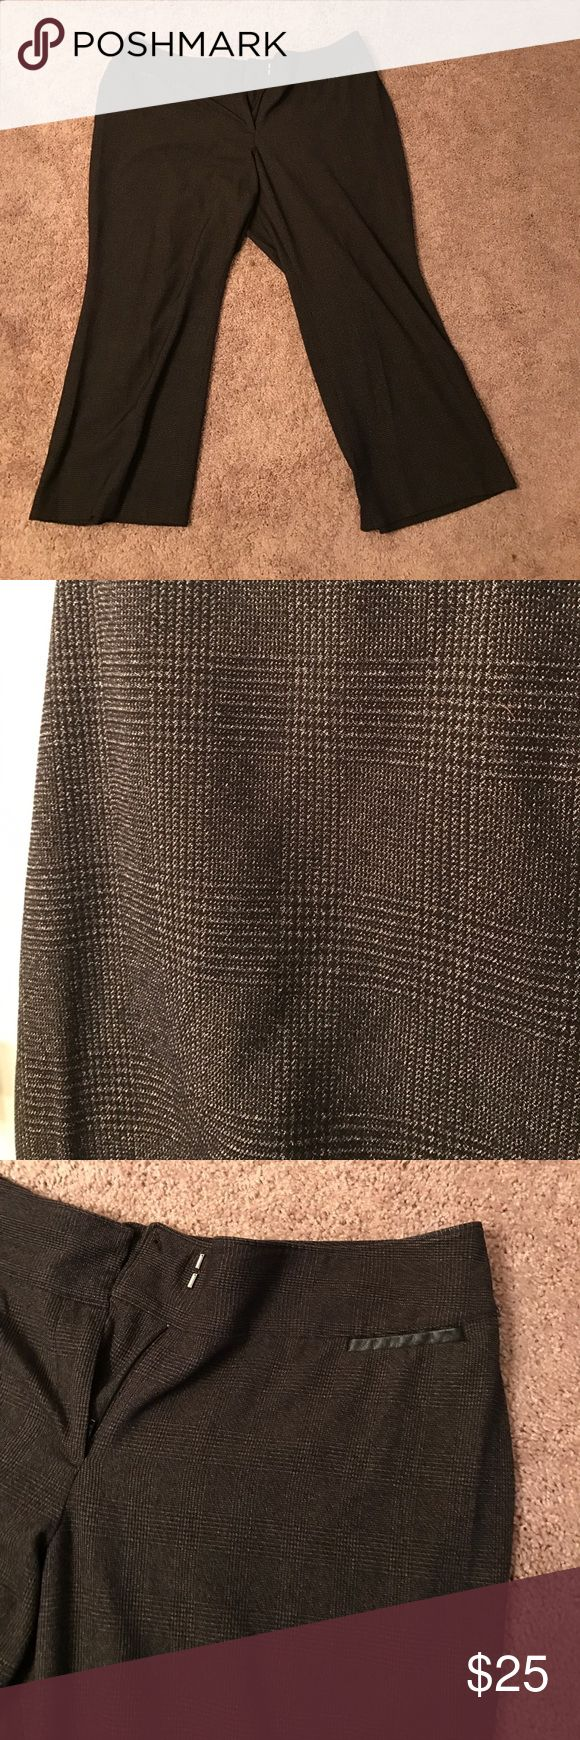 Lane Bryant - Dark brown printed slacks A very nice pair of dark brown slacks from Lane Bryant. They have a cool plaid-like print on them. Has two small pockets in the front, mainly for decoration. In good used condition. Size: 24Petite. Lane Bryant Pants Trousers